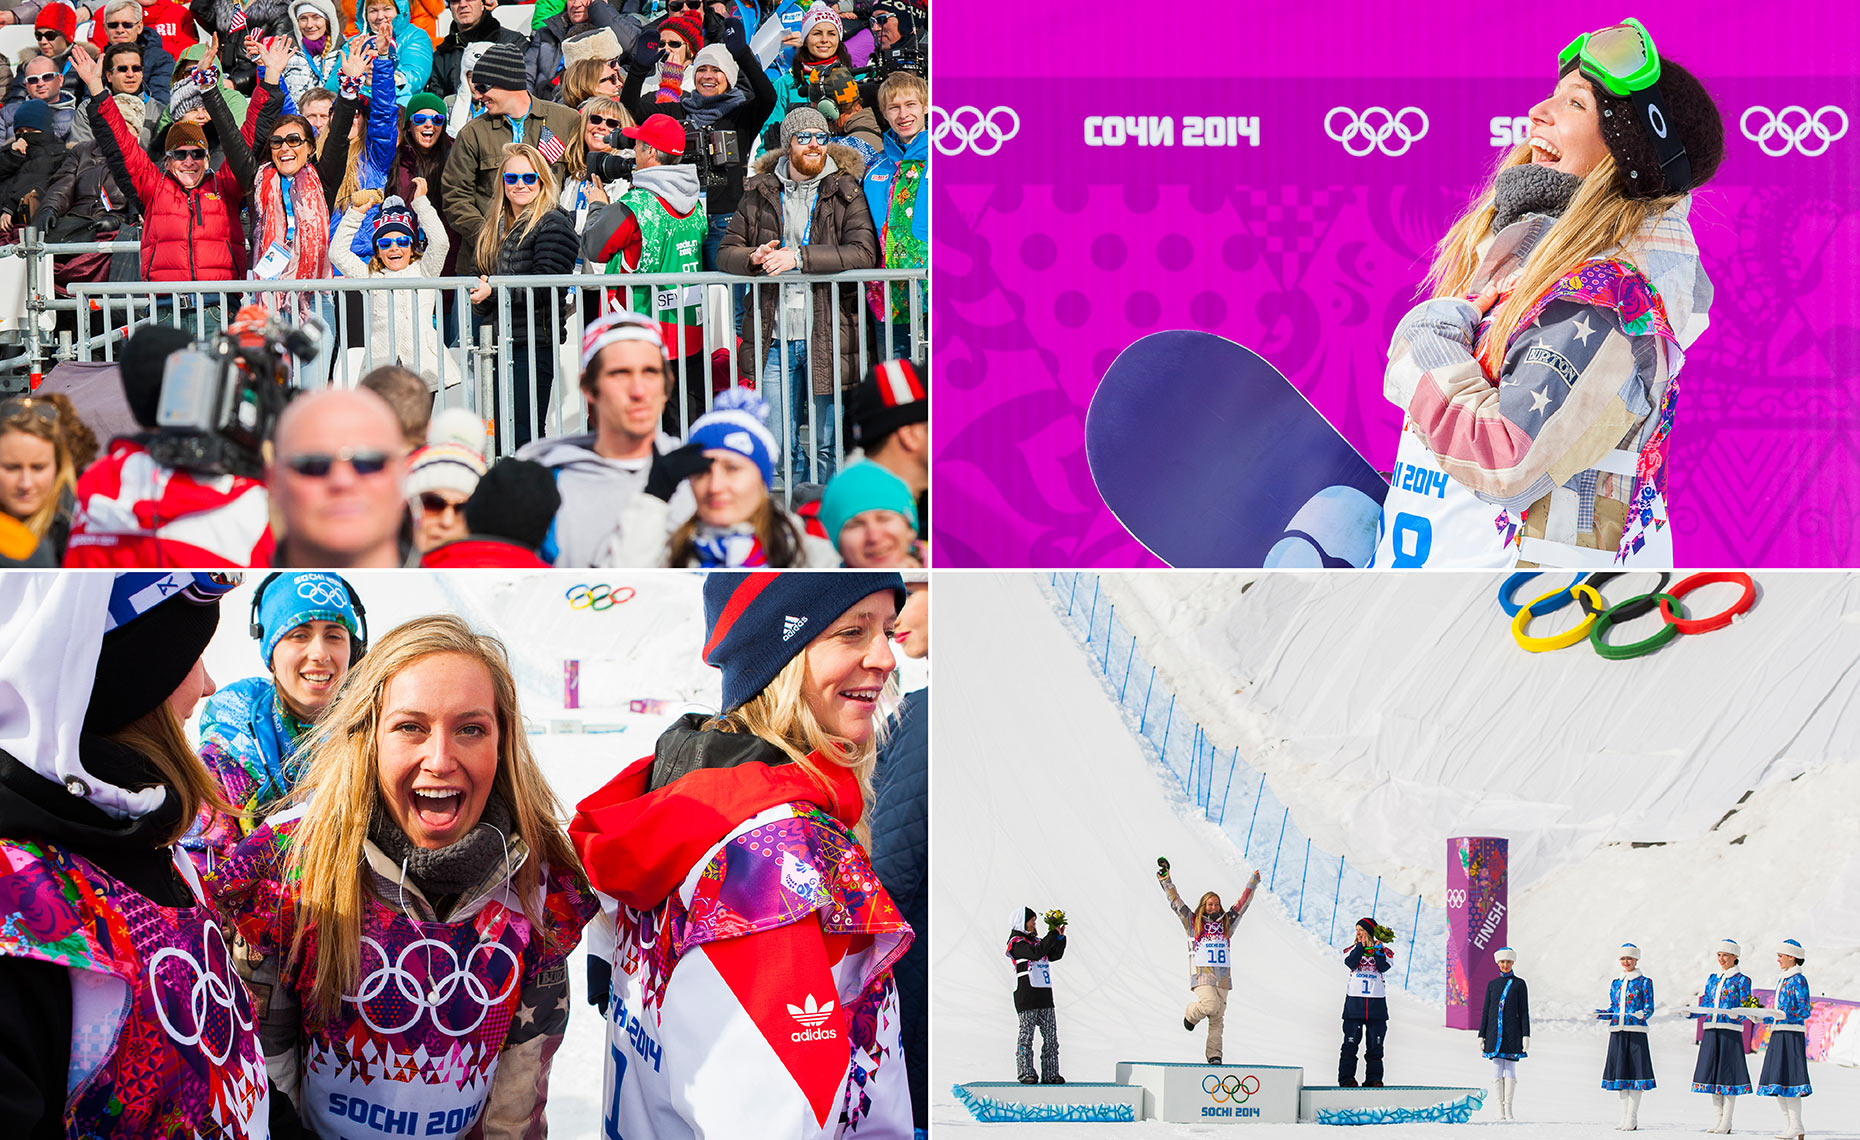 23_Sochi_Olympics_Jamie_Anderson_Russia_Chris_Wellhausen